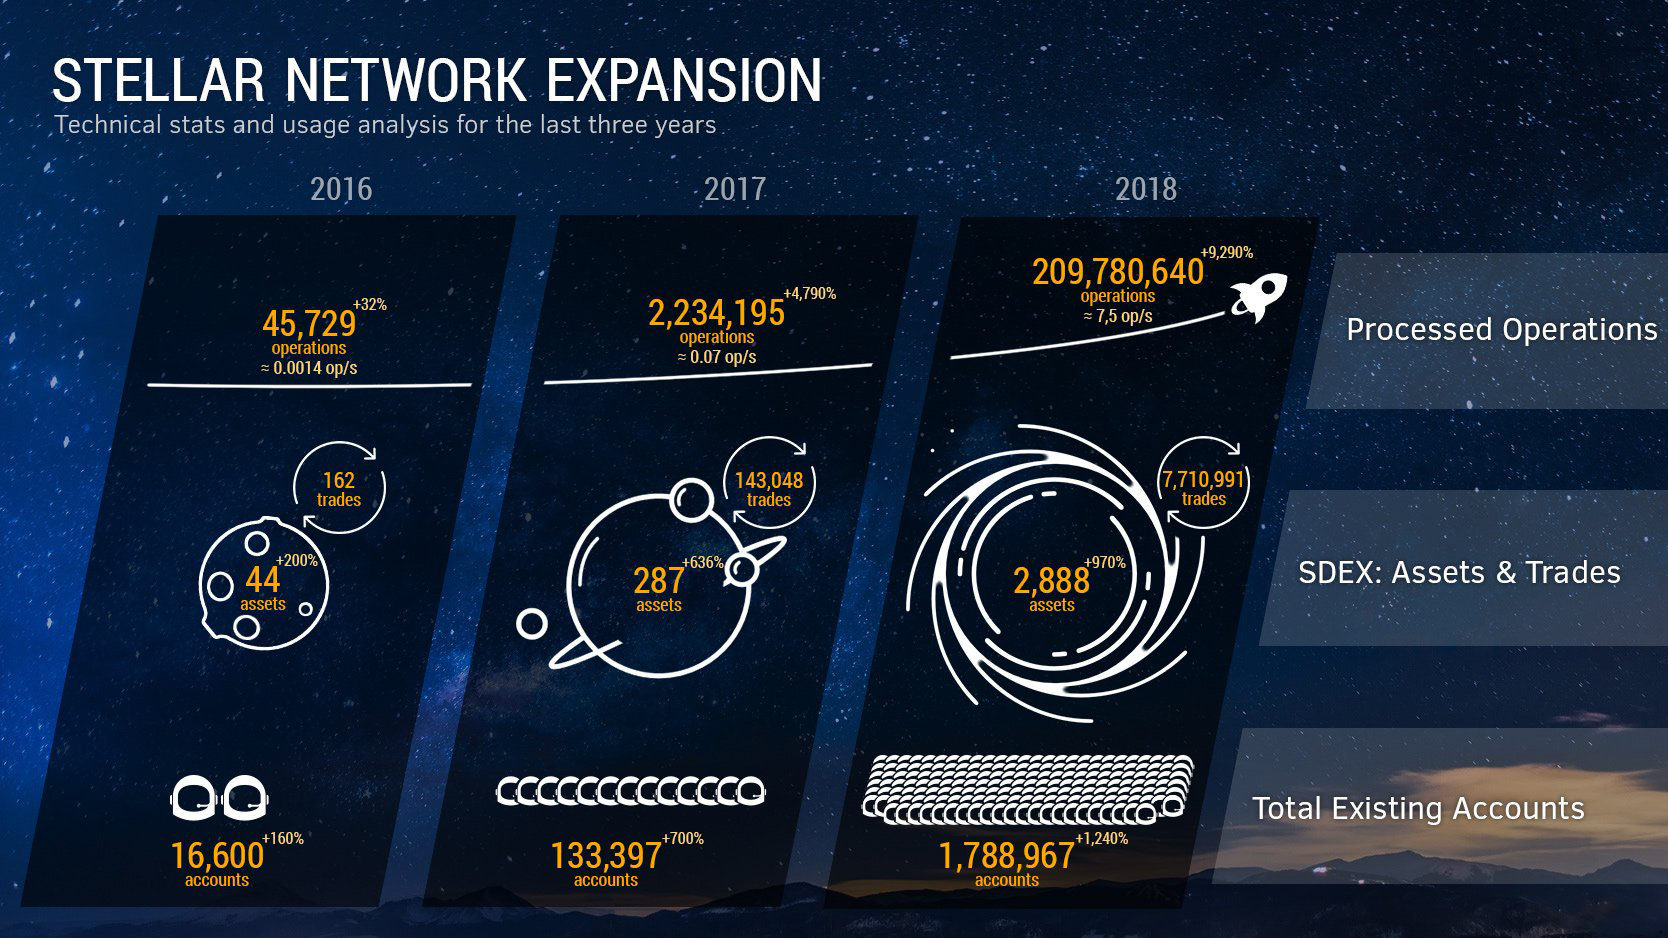 Stellar Network Expansion